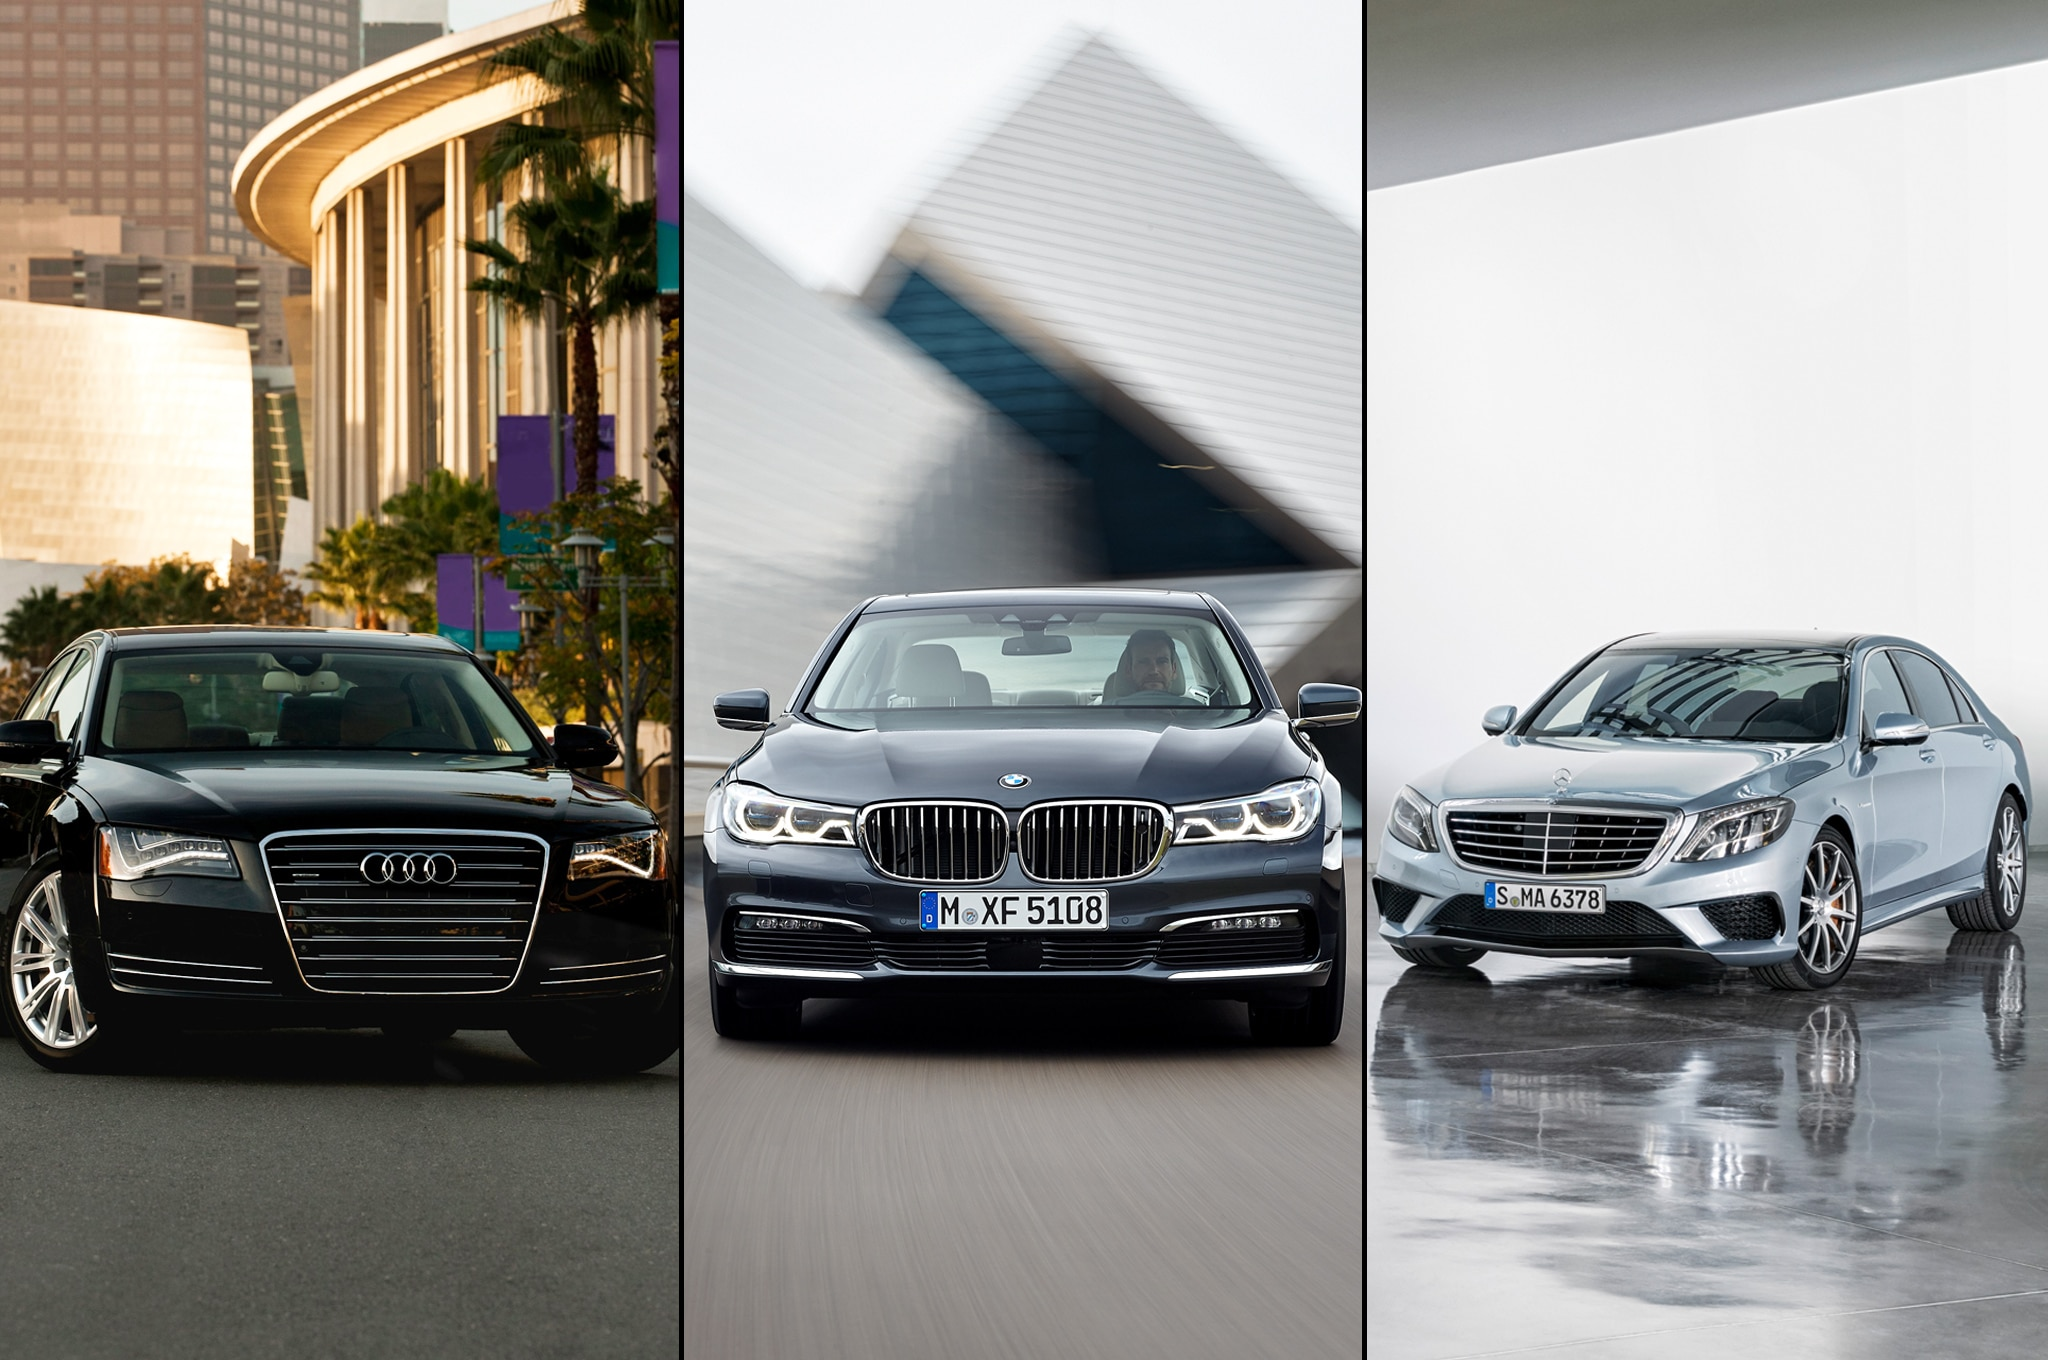 Audi vs bmw vs mercedes benz in the modern era for Bmw mercedes benz